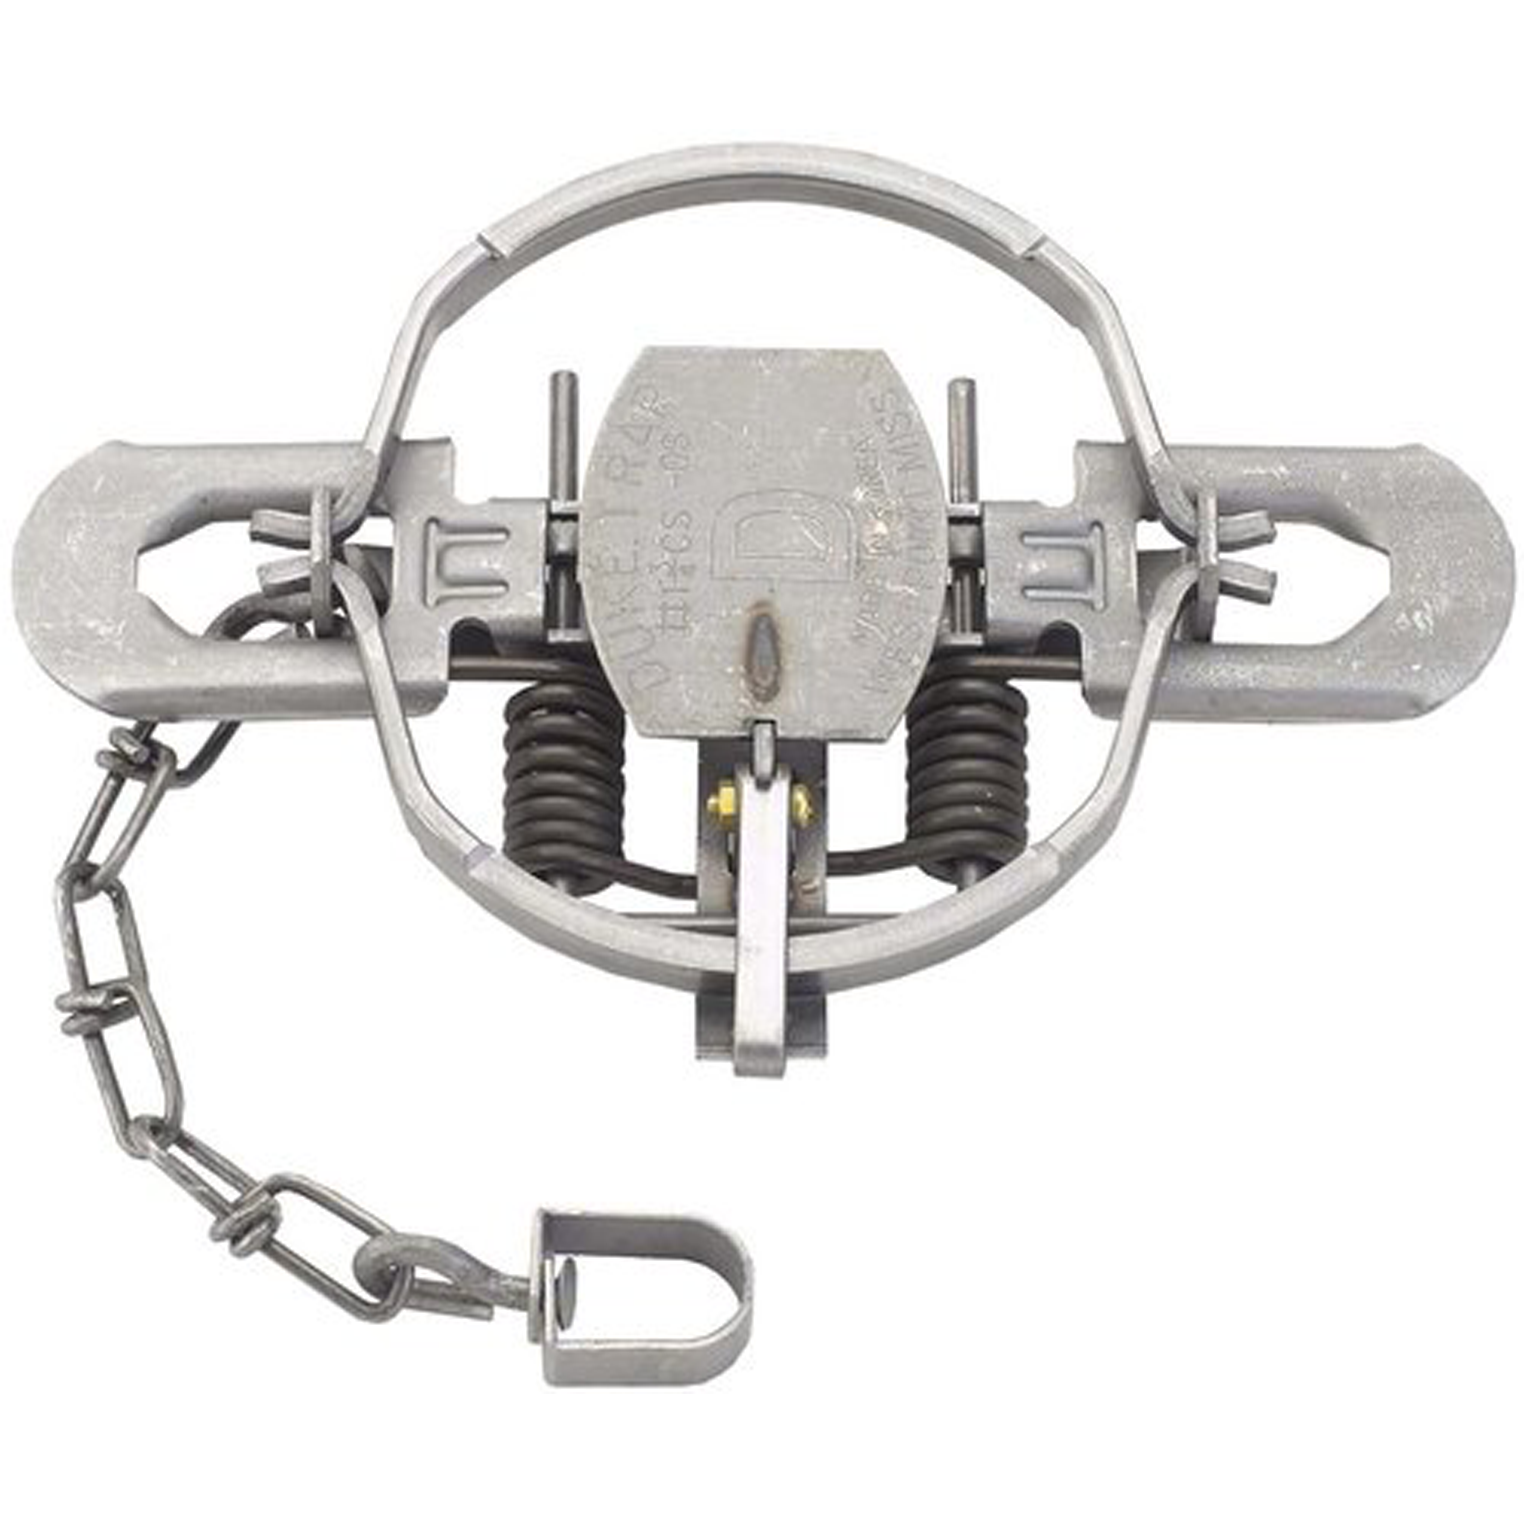 Duke 1 3/4 Coil Spring Offset Trap